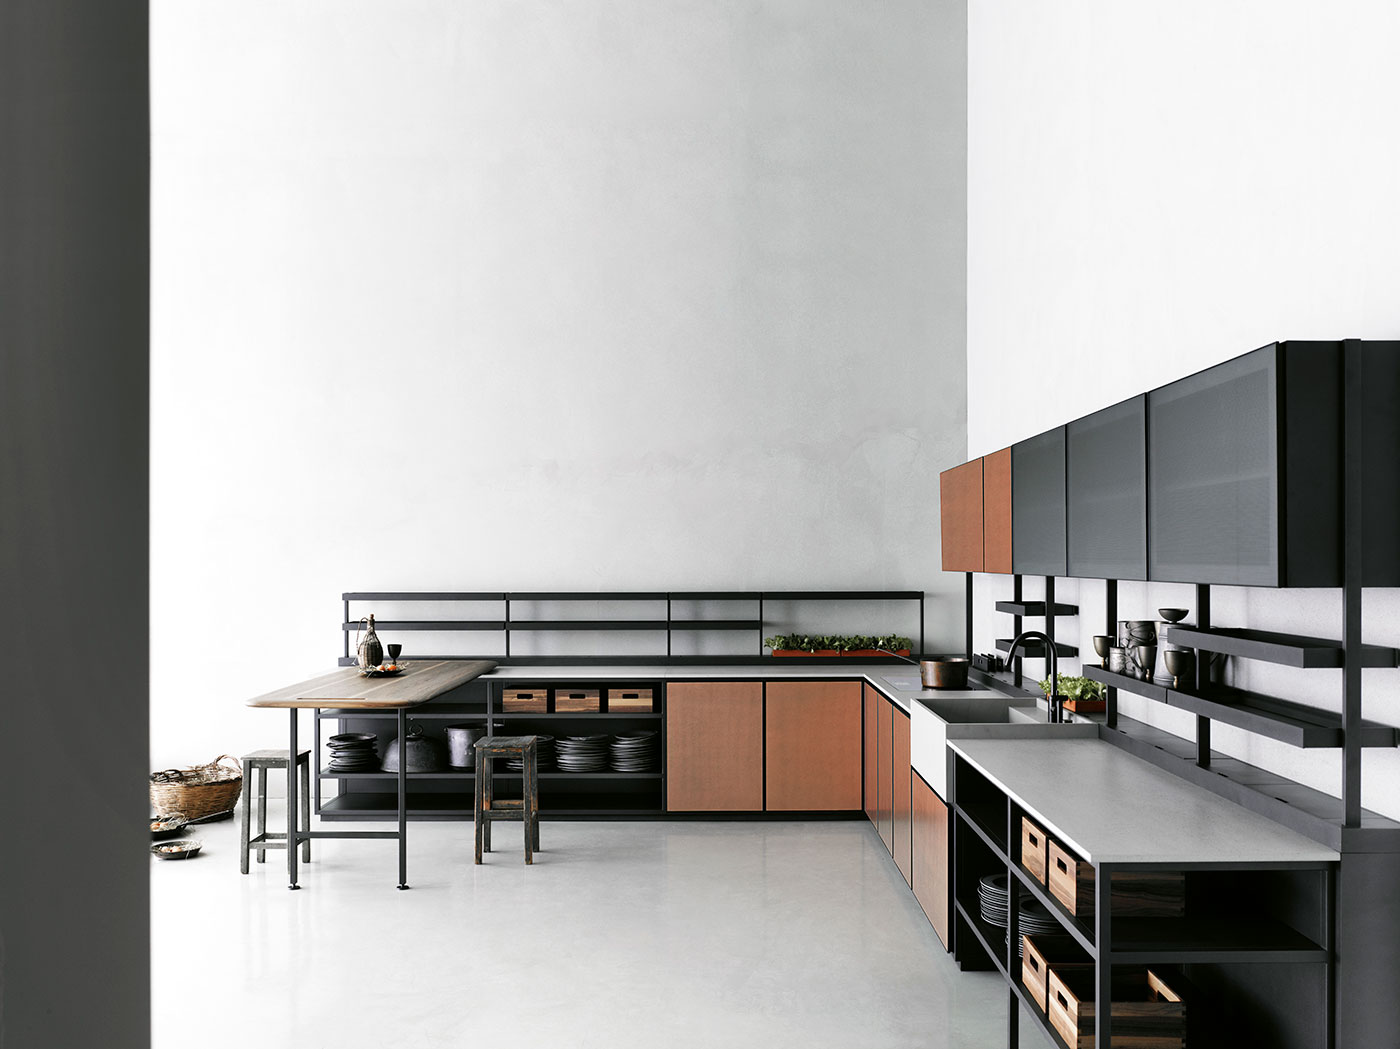 Obegi Home Boffi Salinas kitchen and Wall Units By Tommasosartori High